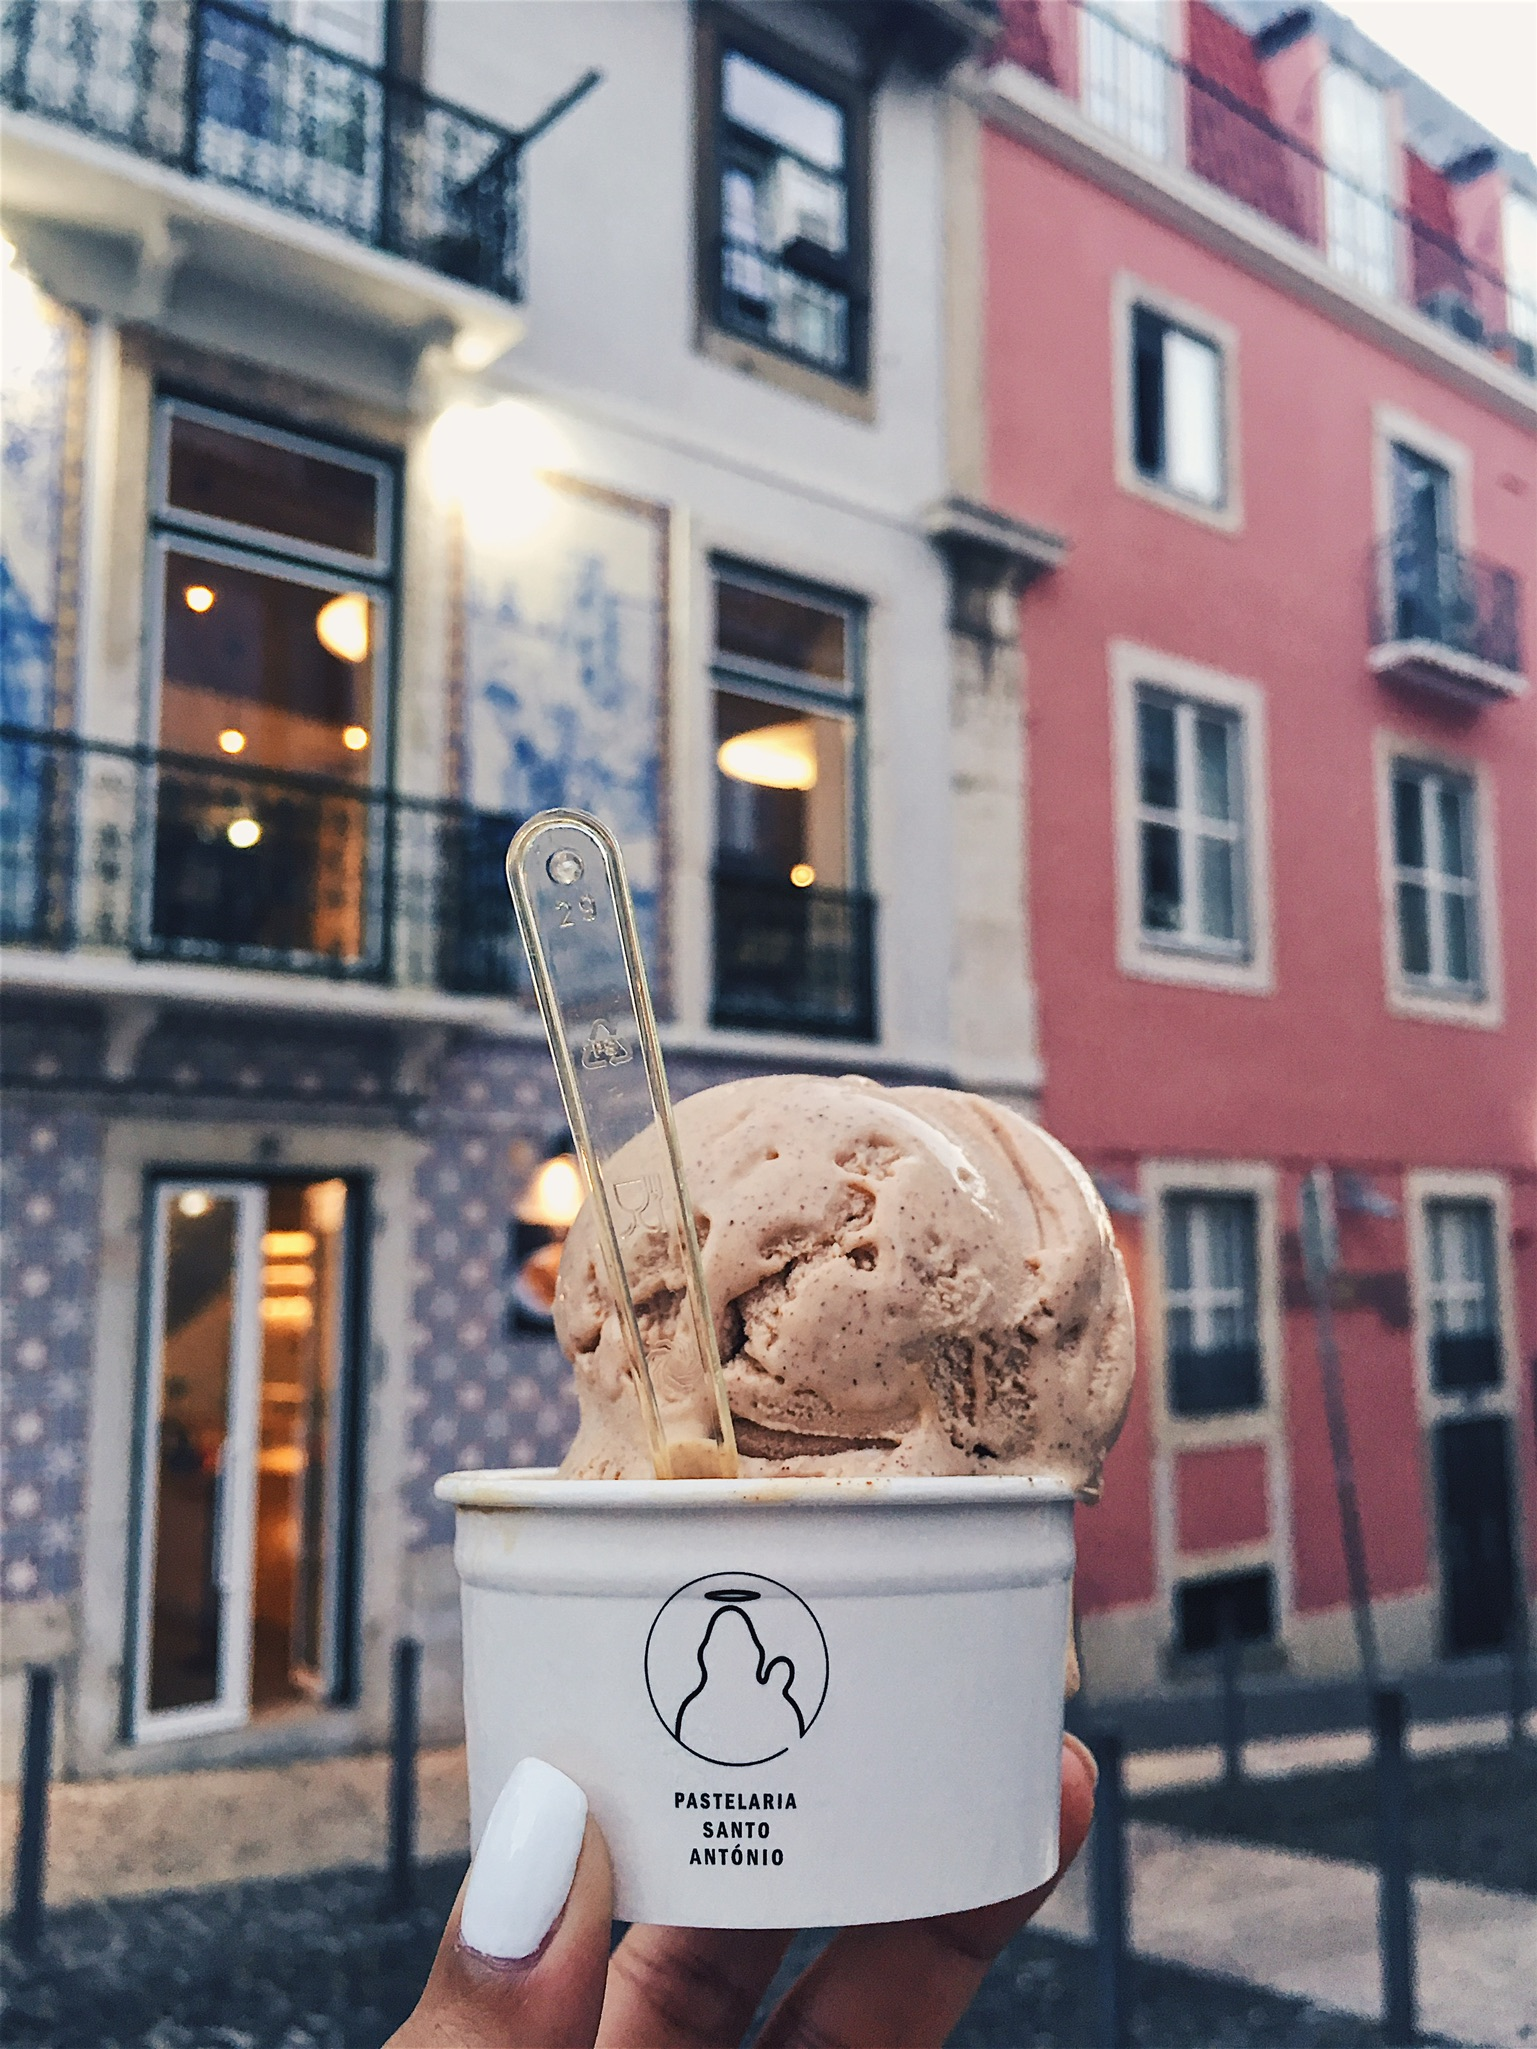 Absolutely delicious scoops of cinnamon and hazelnut ice cream to fuel my climb to the castelo